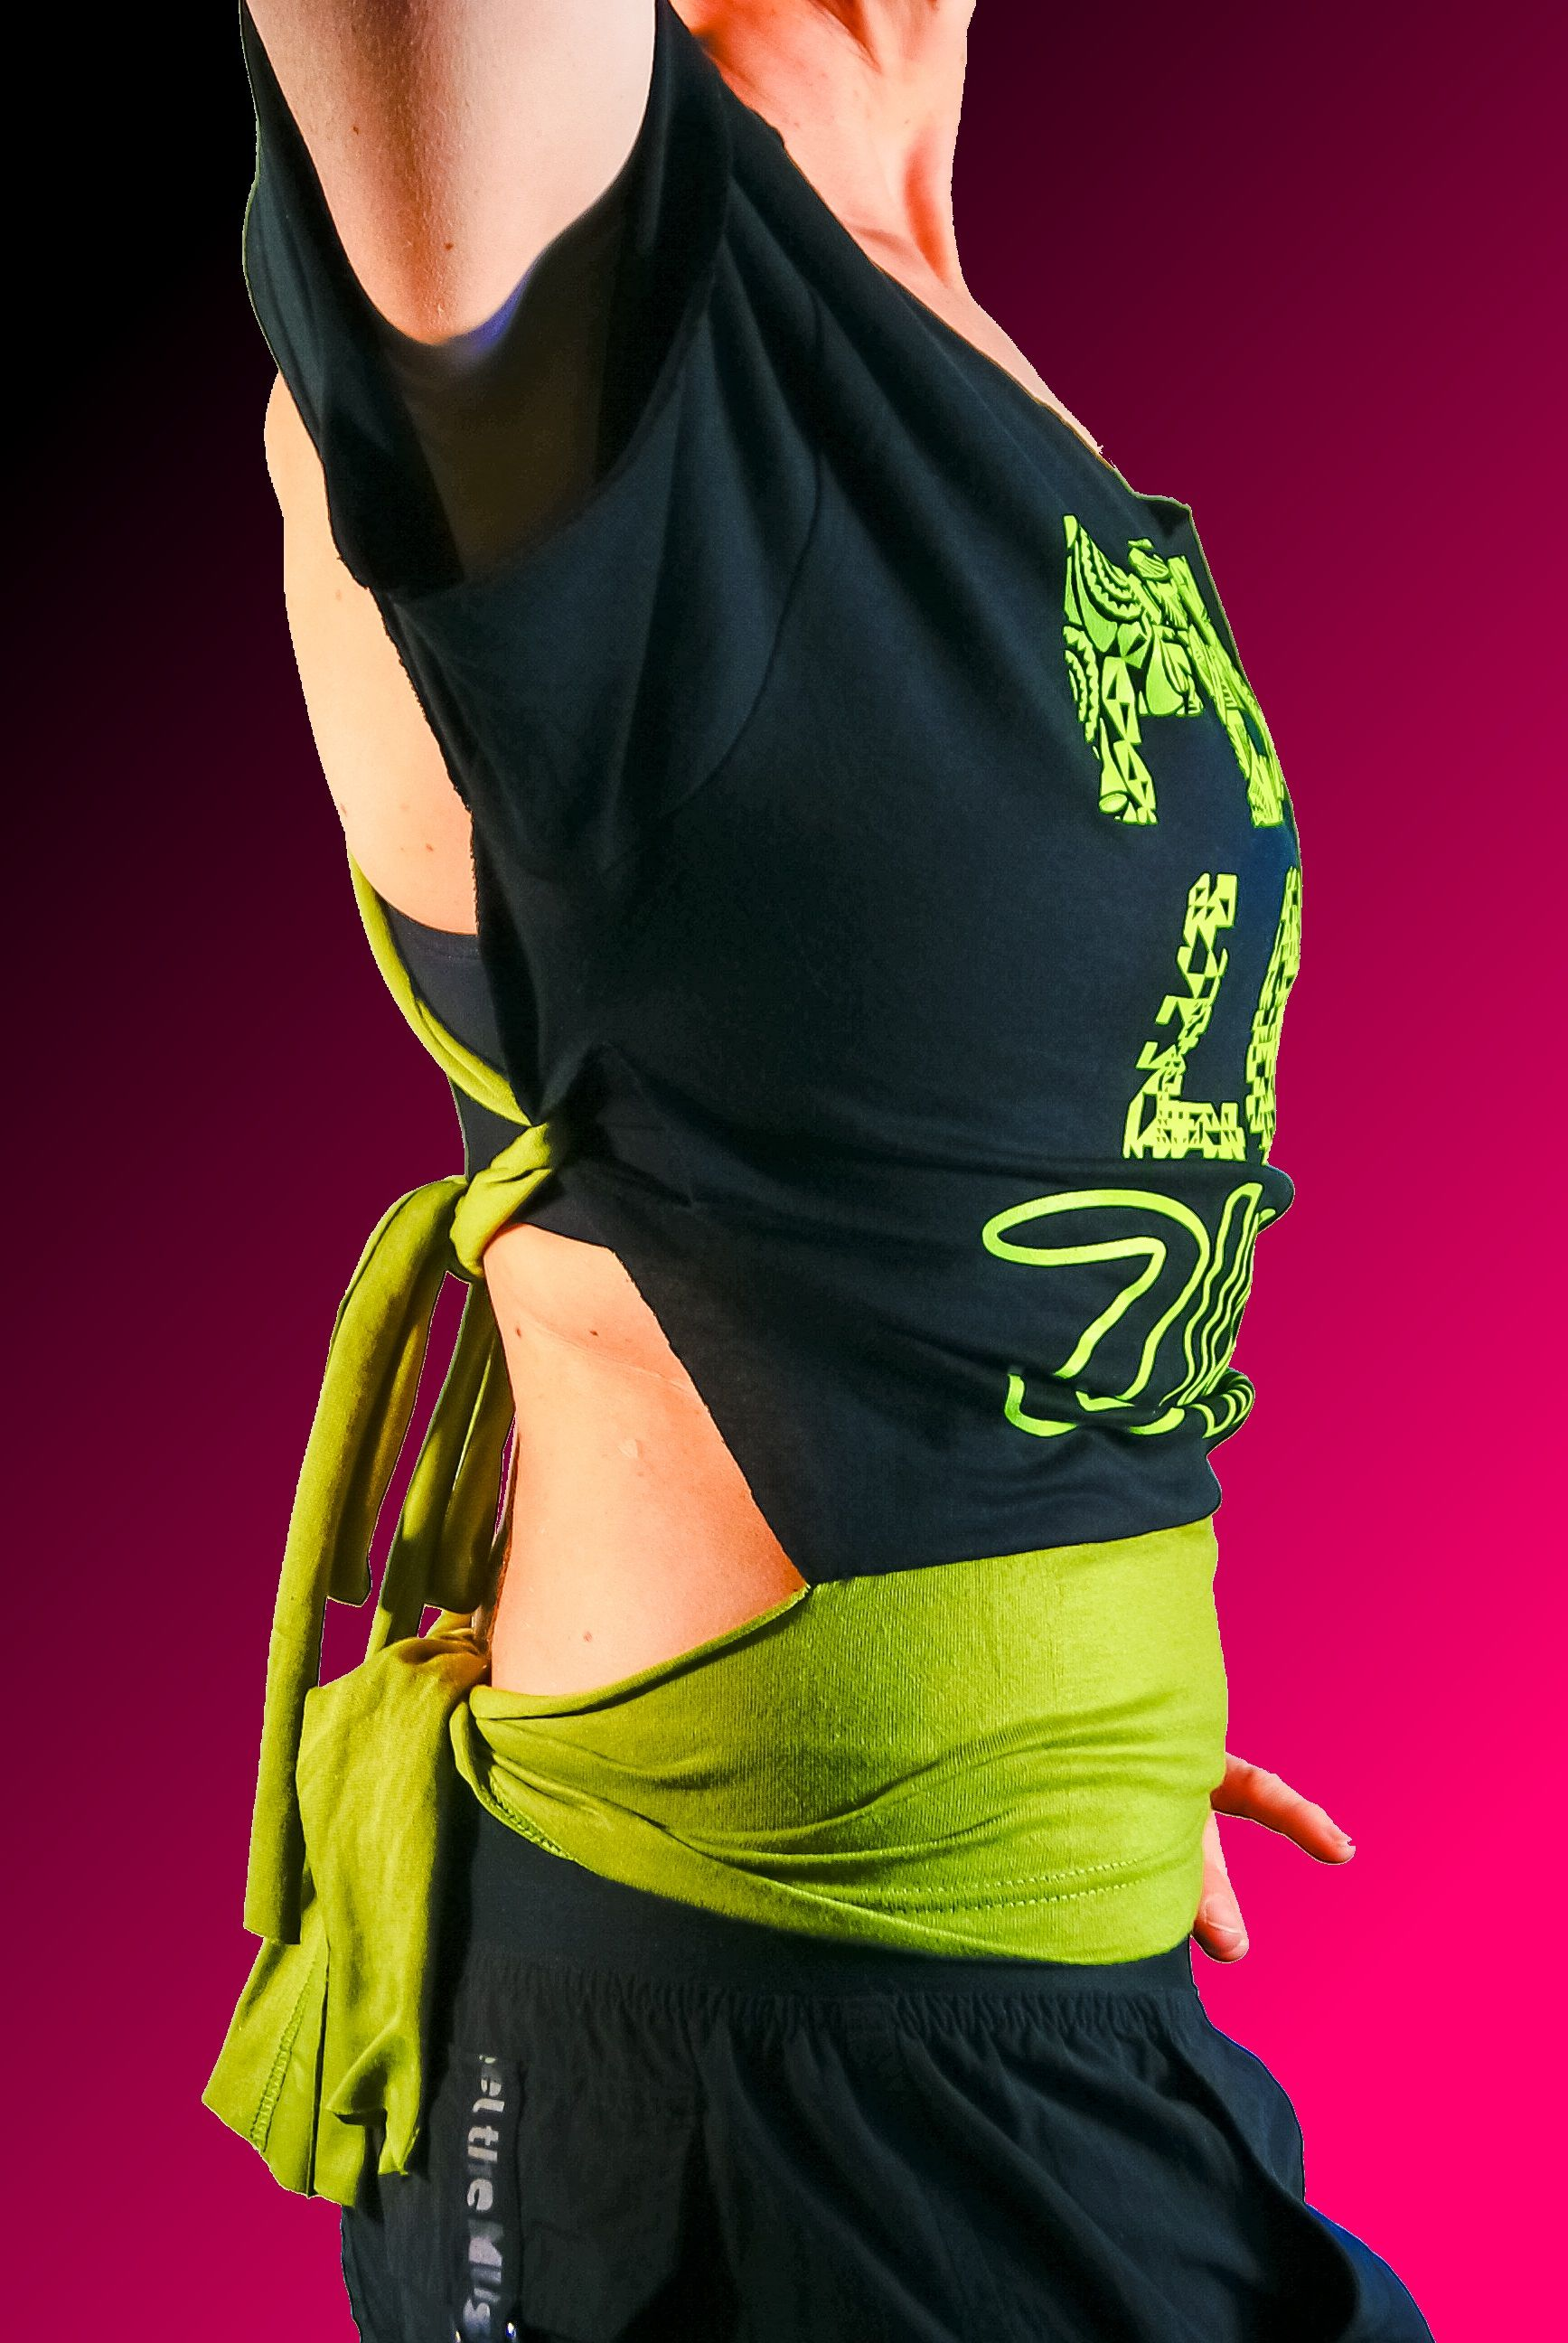 Zumba Love Peace two colors side